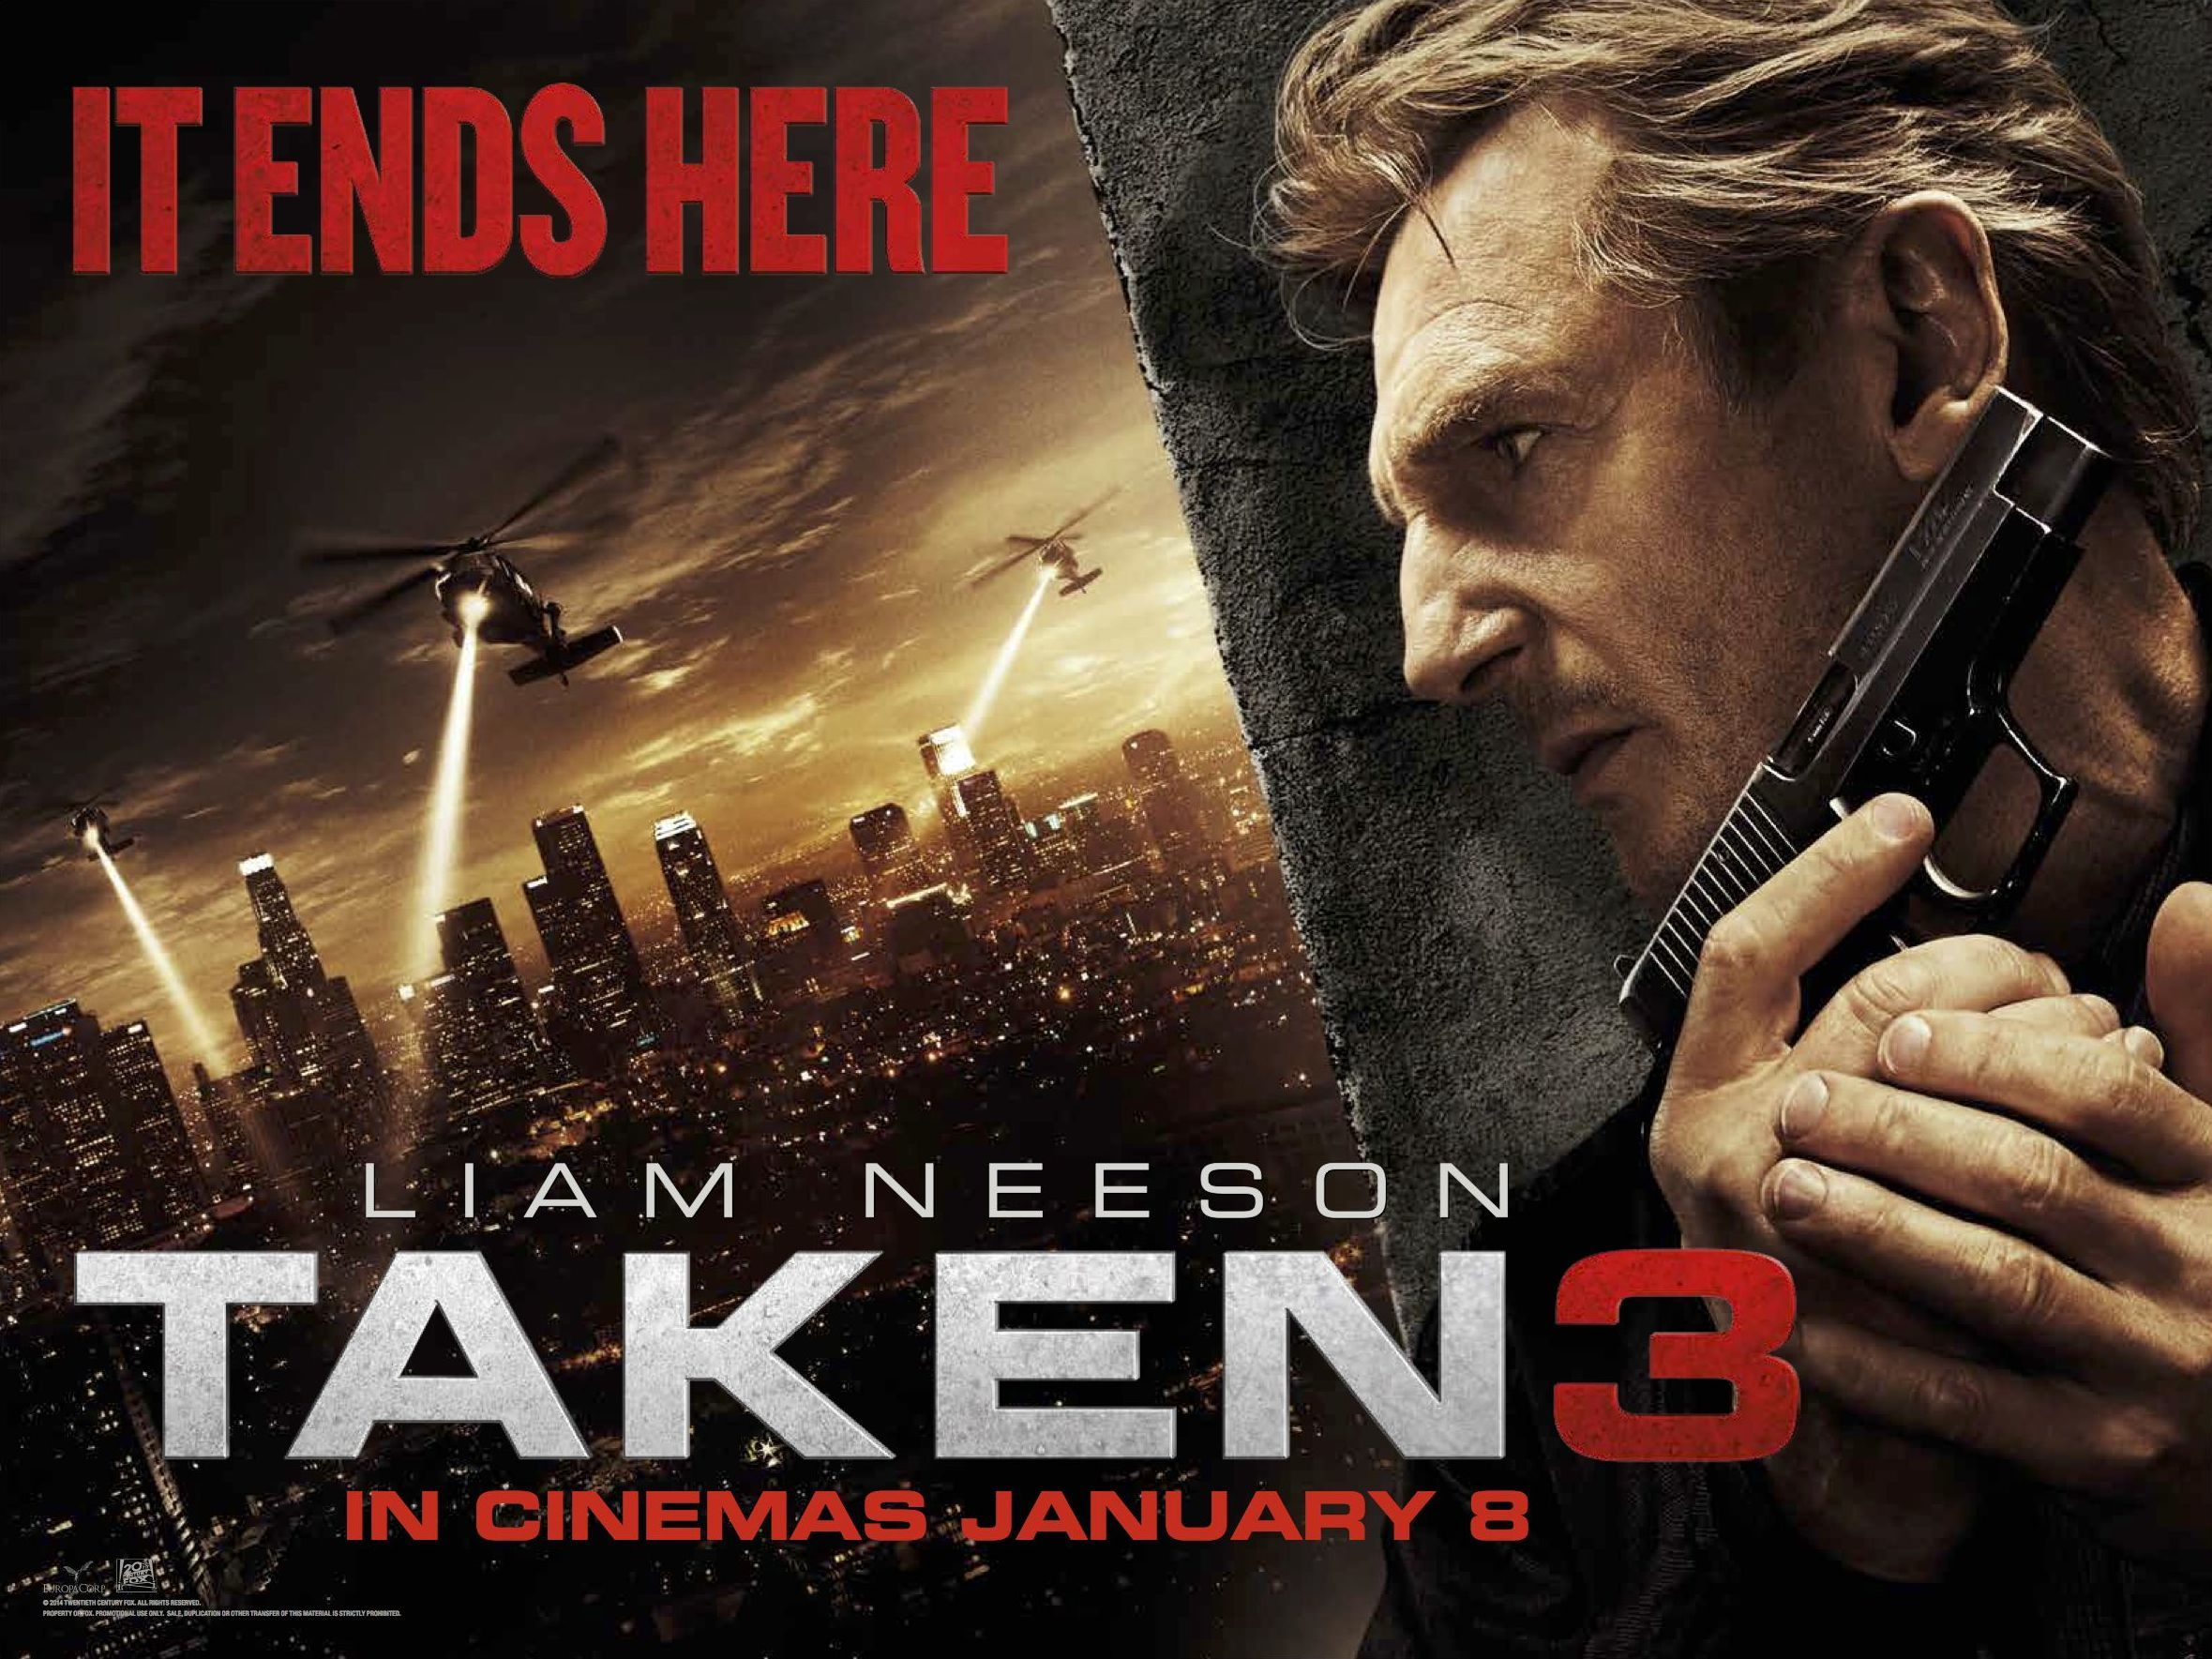 Taken 3 Hollywood Action Movie Poster Image-7851